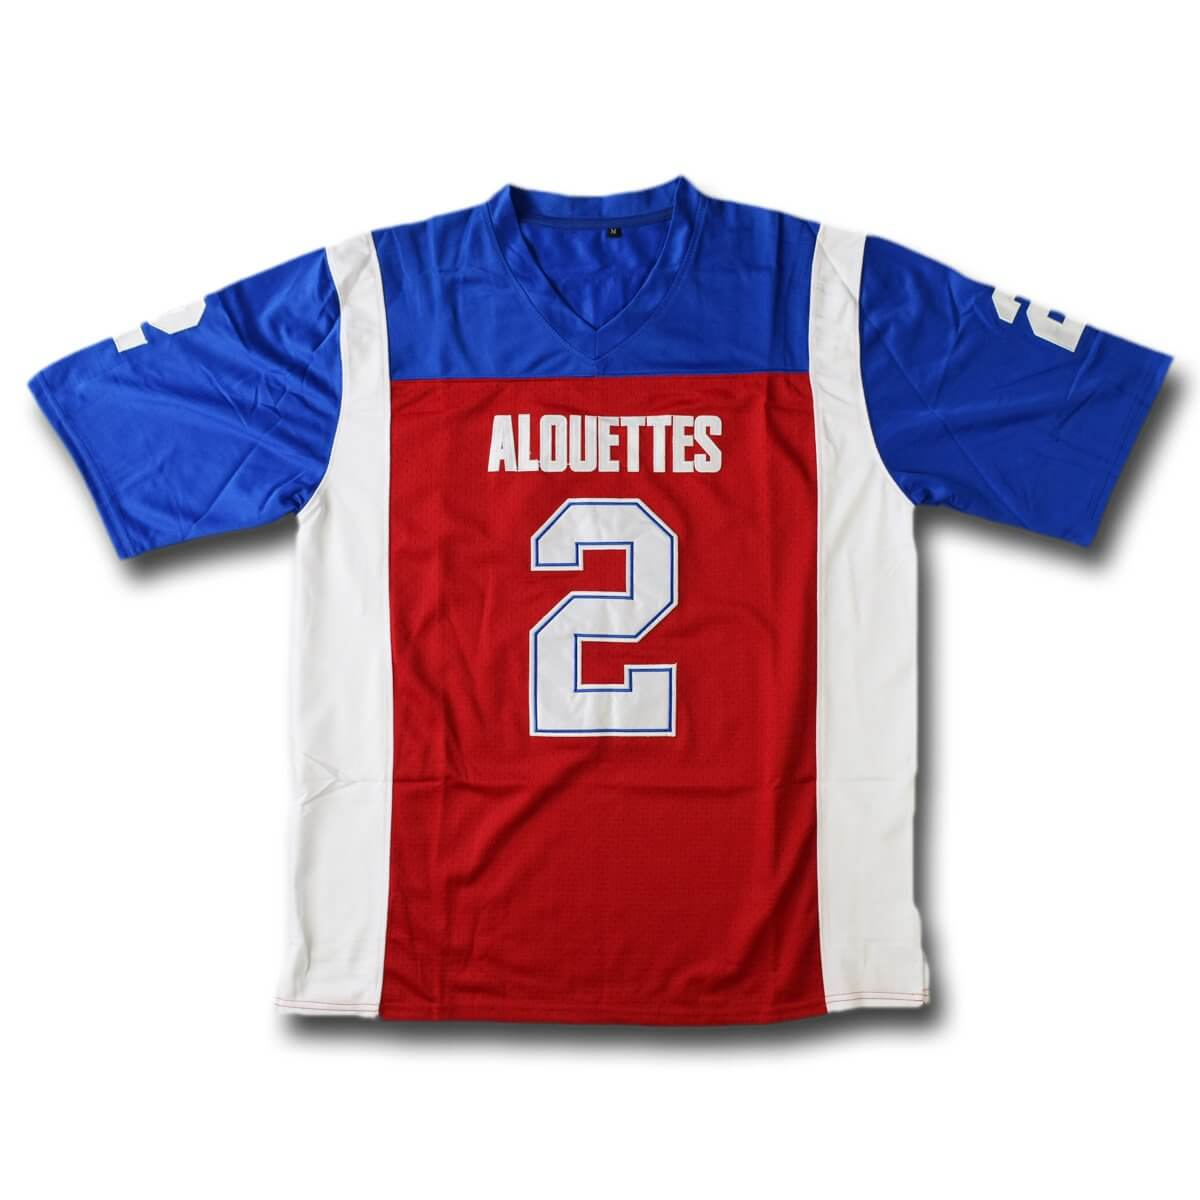 Johnny Manziel Montreal Alouettes 2 Football Jersey